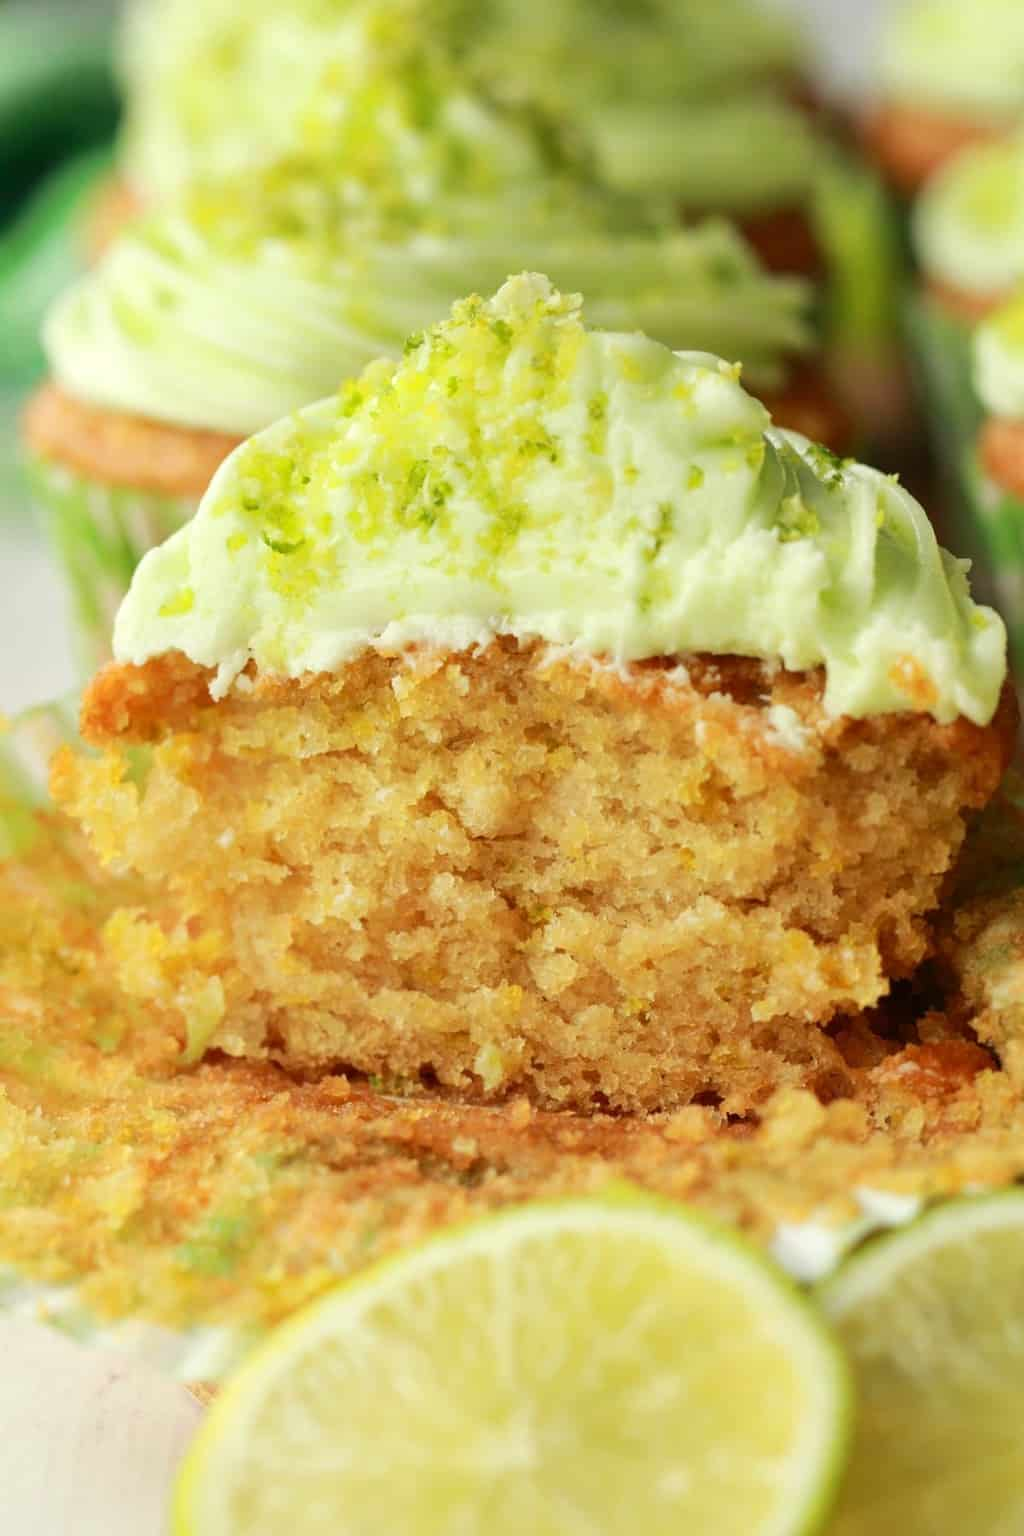 close up of vegan key lime cupcake sliced in half